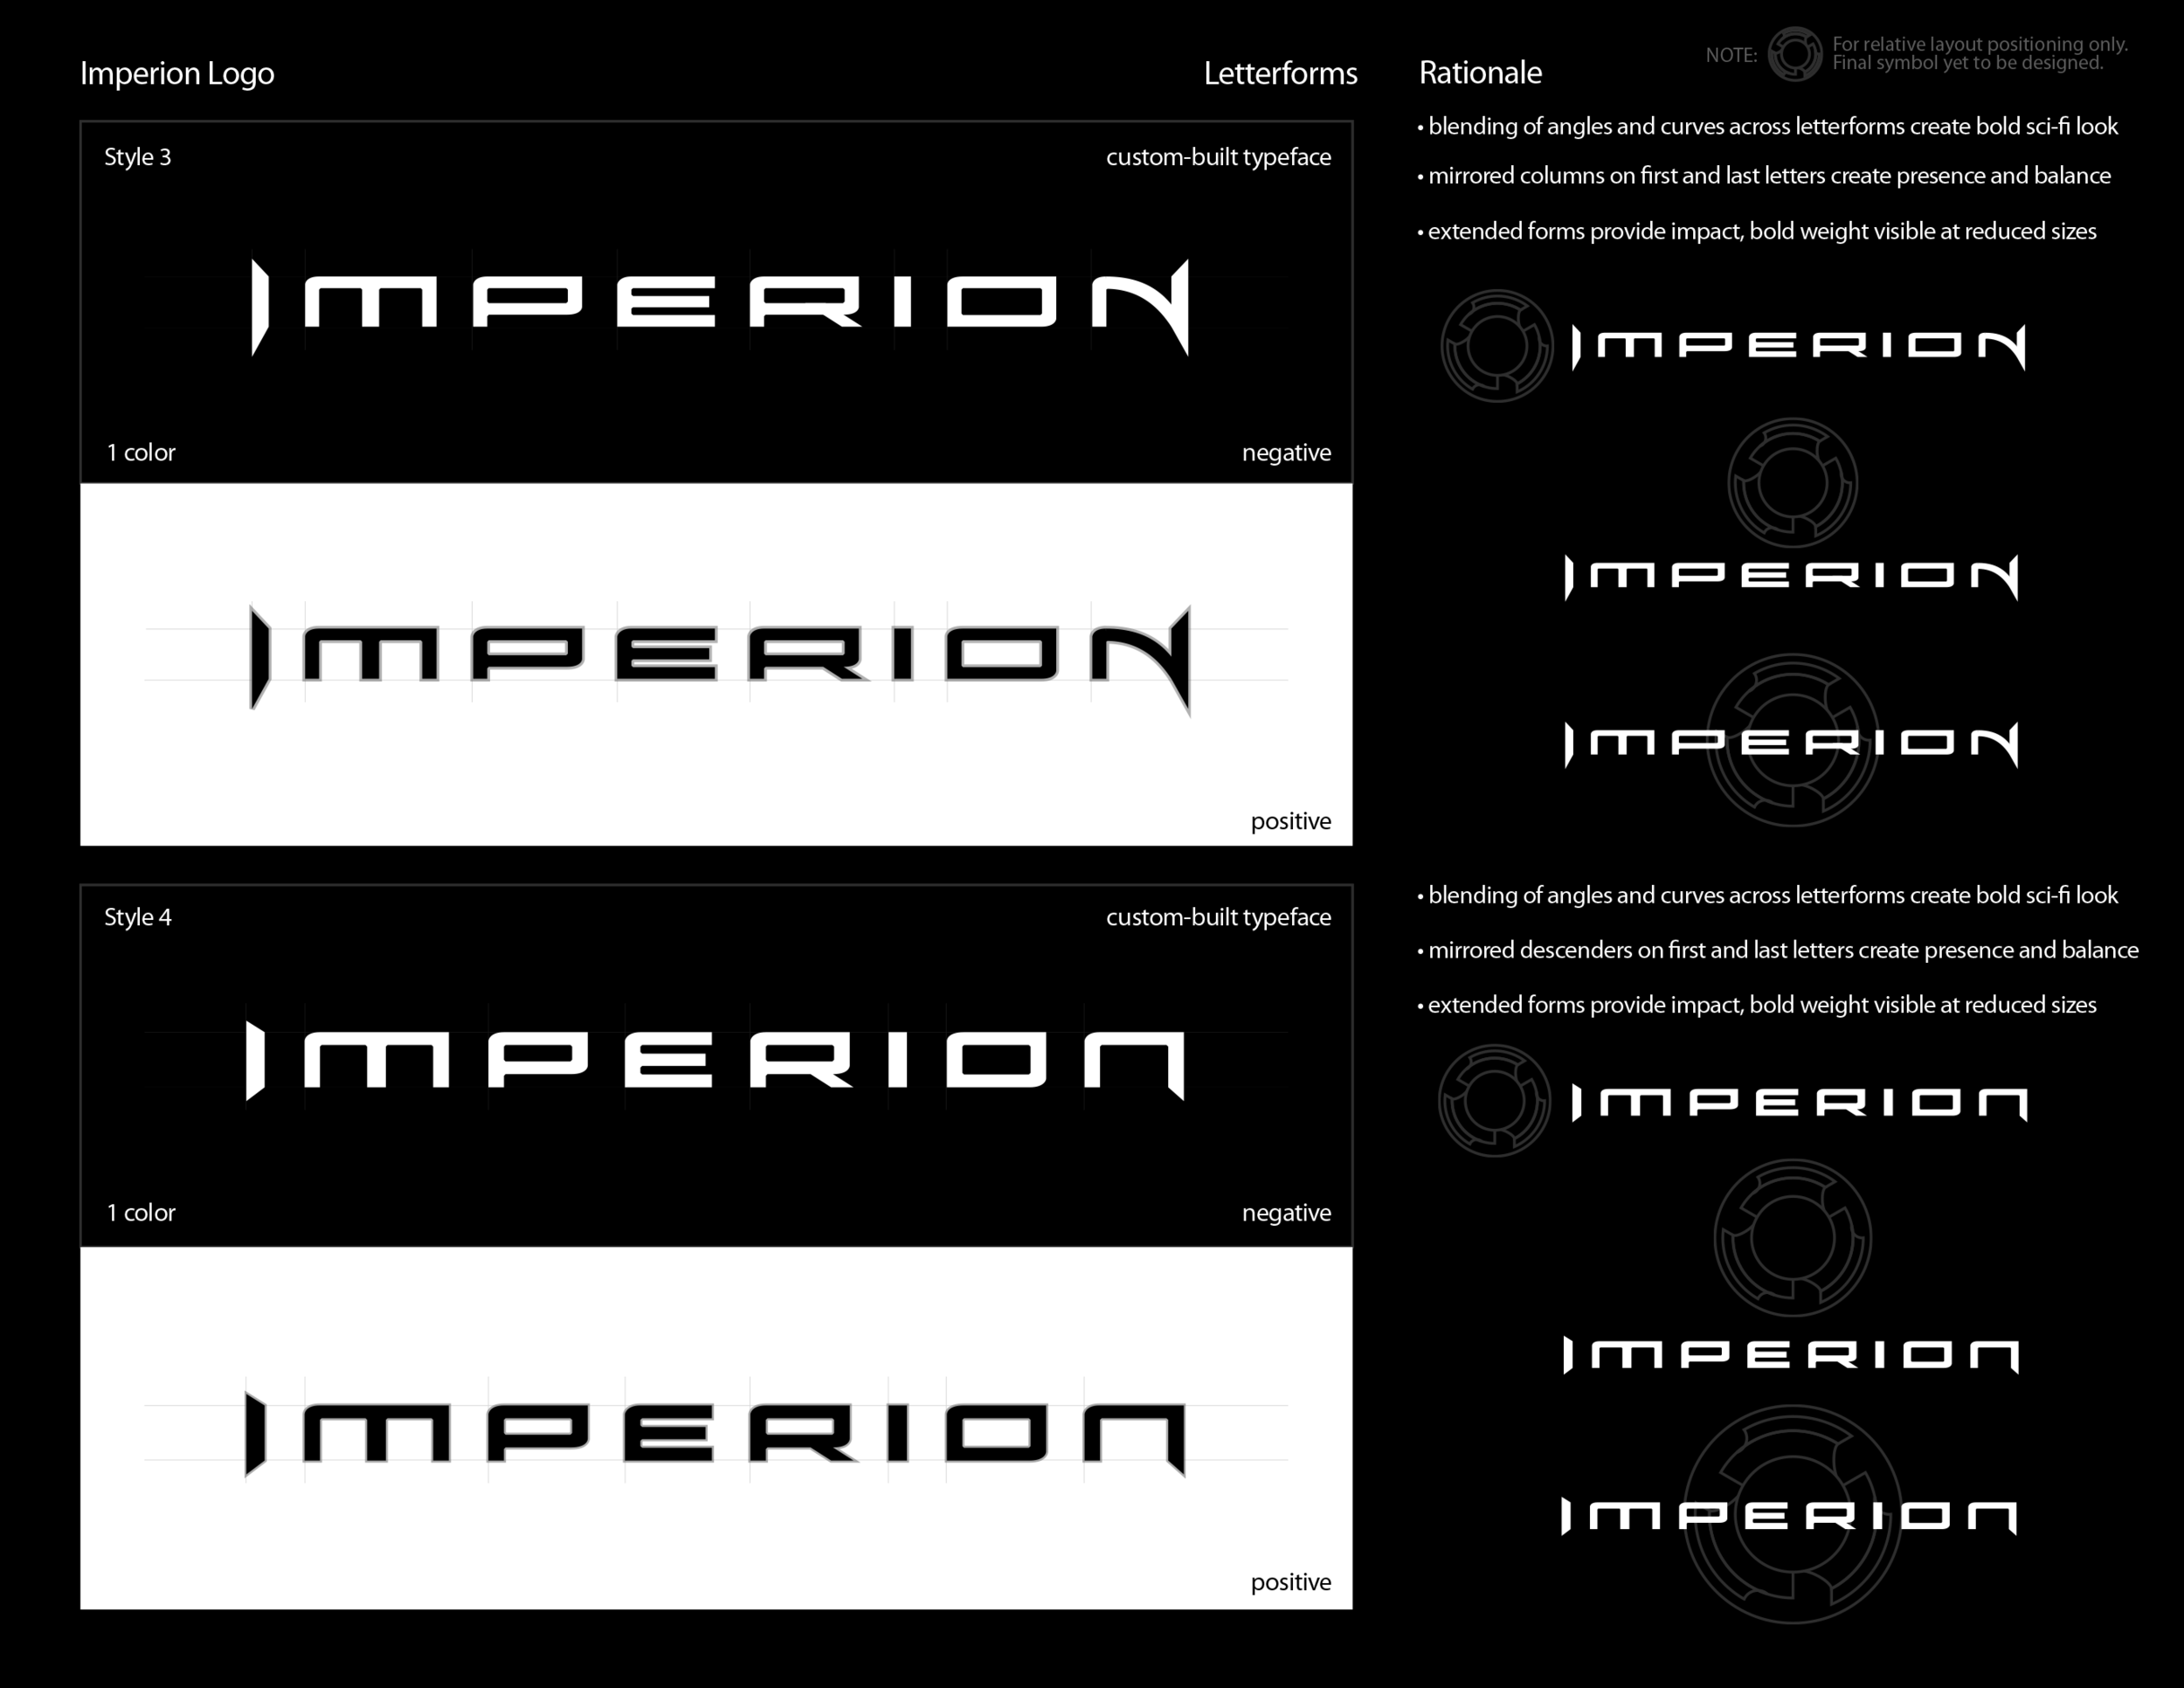 TSF_imperion_logotype-2.png